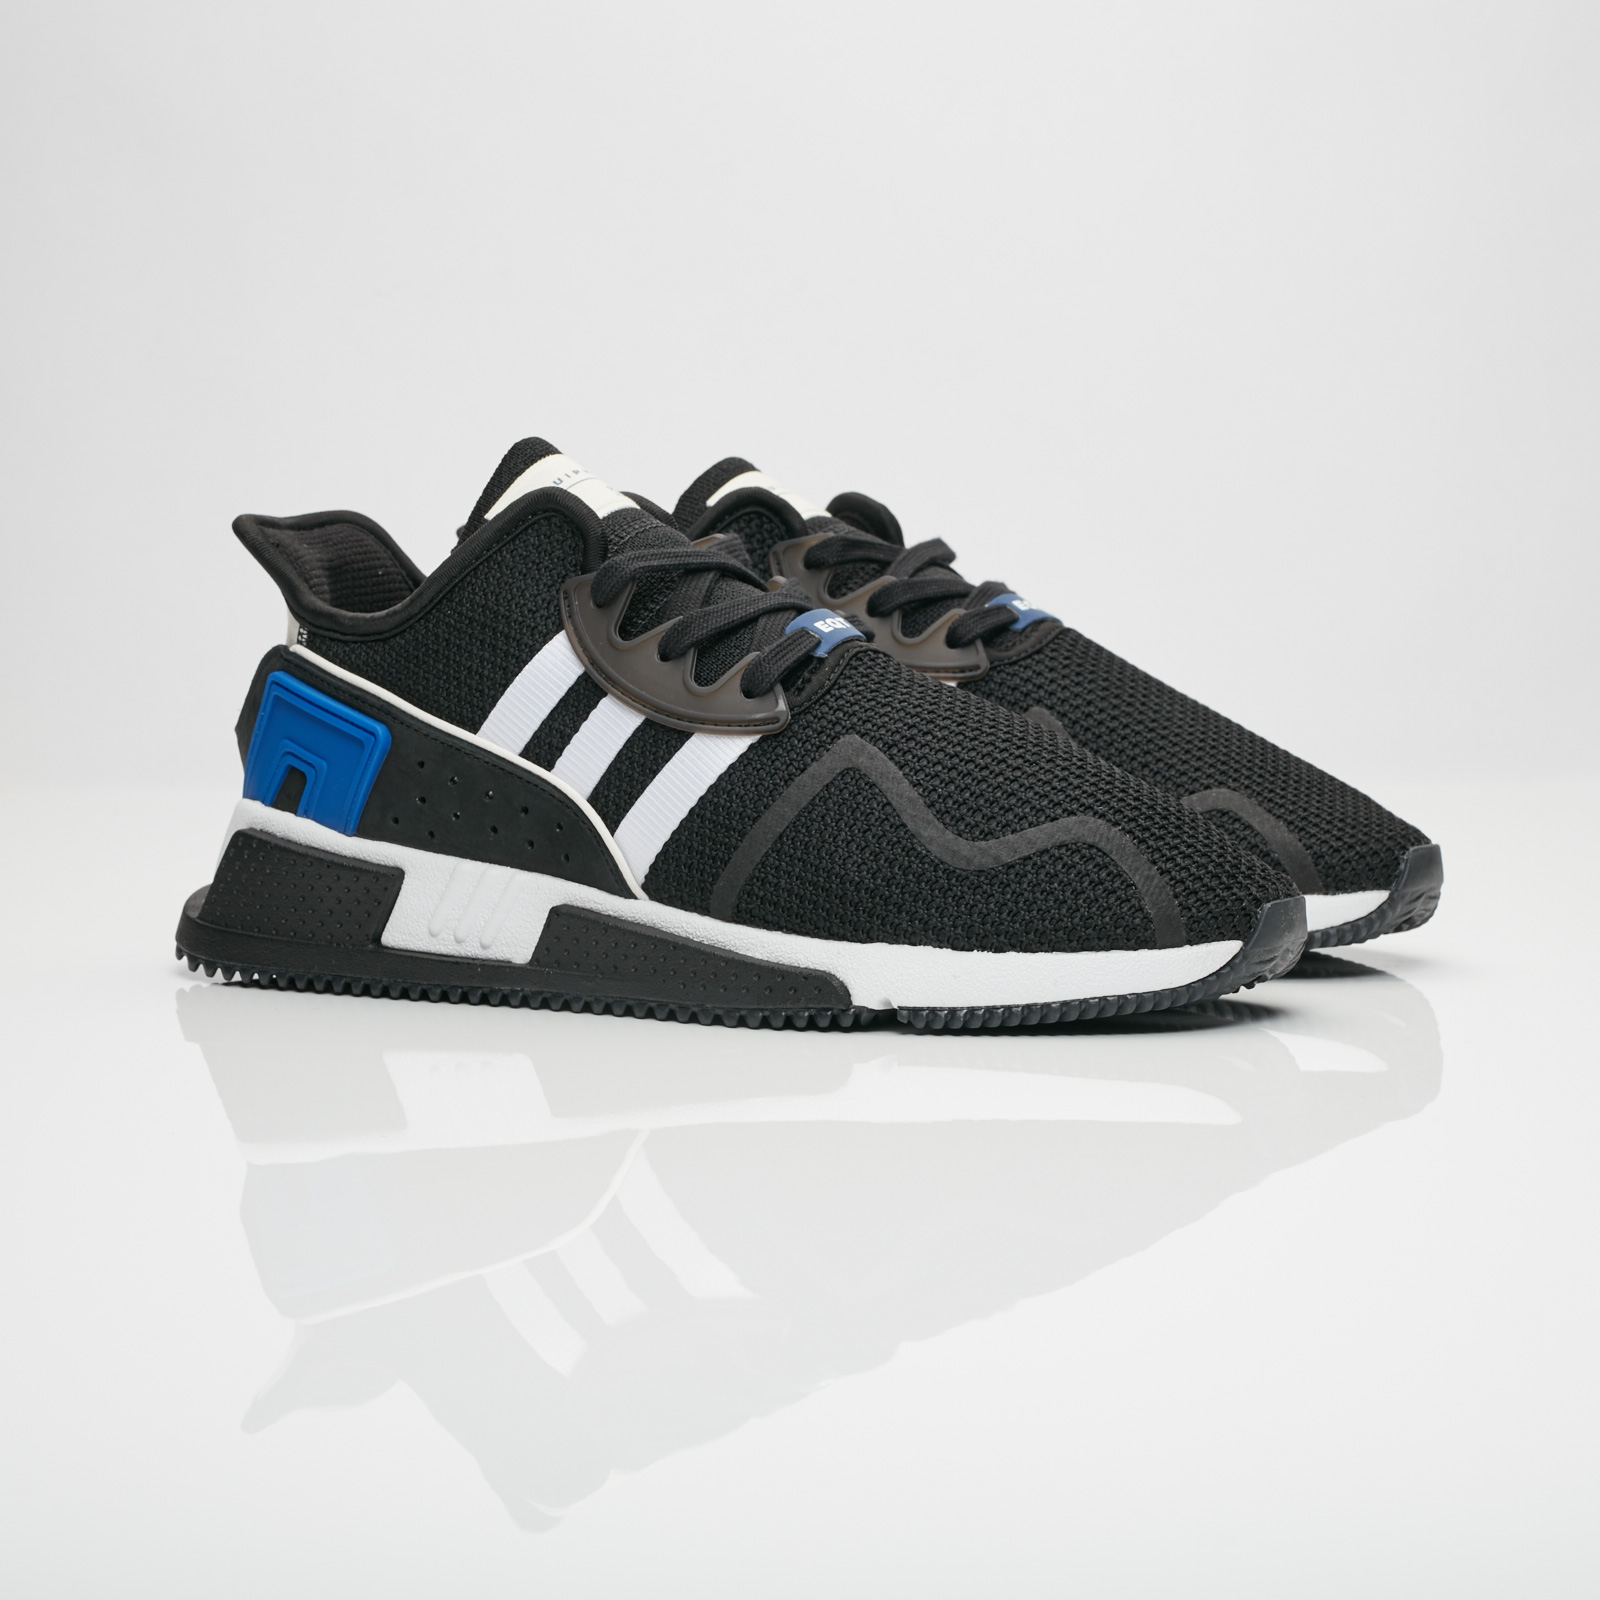 reputable site 9014a 013a4 adidas Originals EQT Cushion ADV